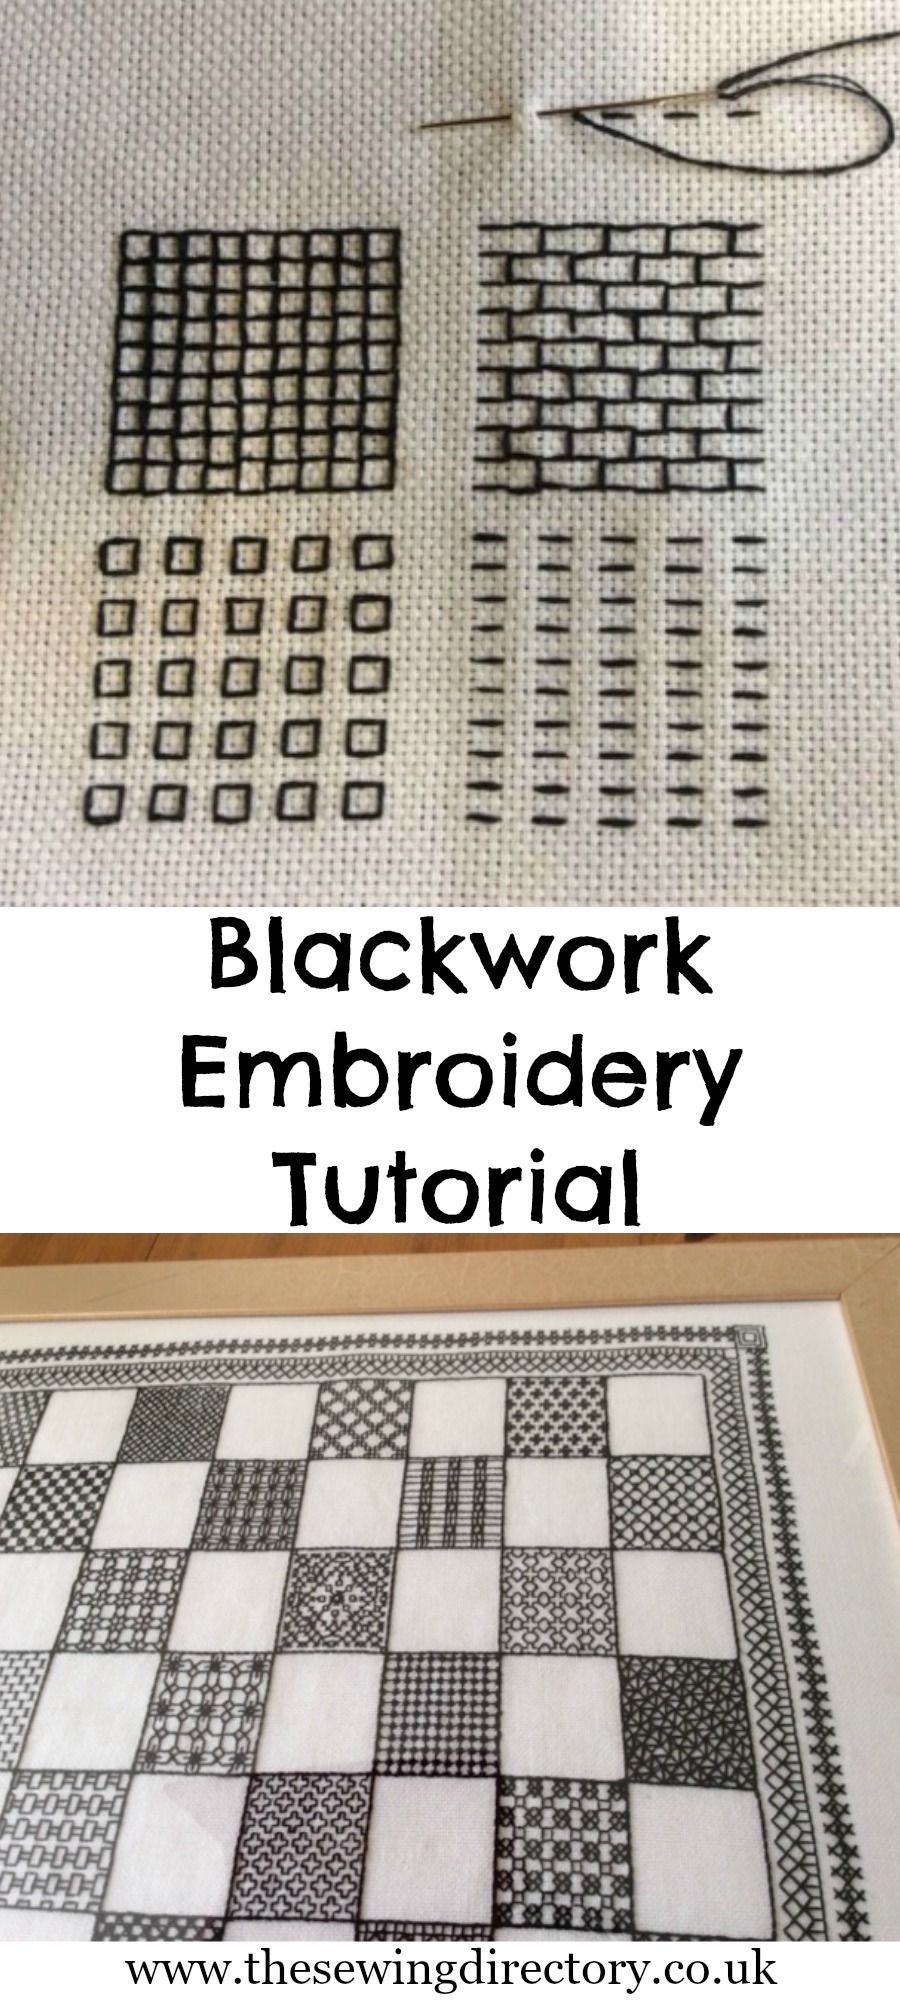 Embroidery Price Sheet - Blackwork embroidery tutorial part of our 10 part hand embroidery series